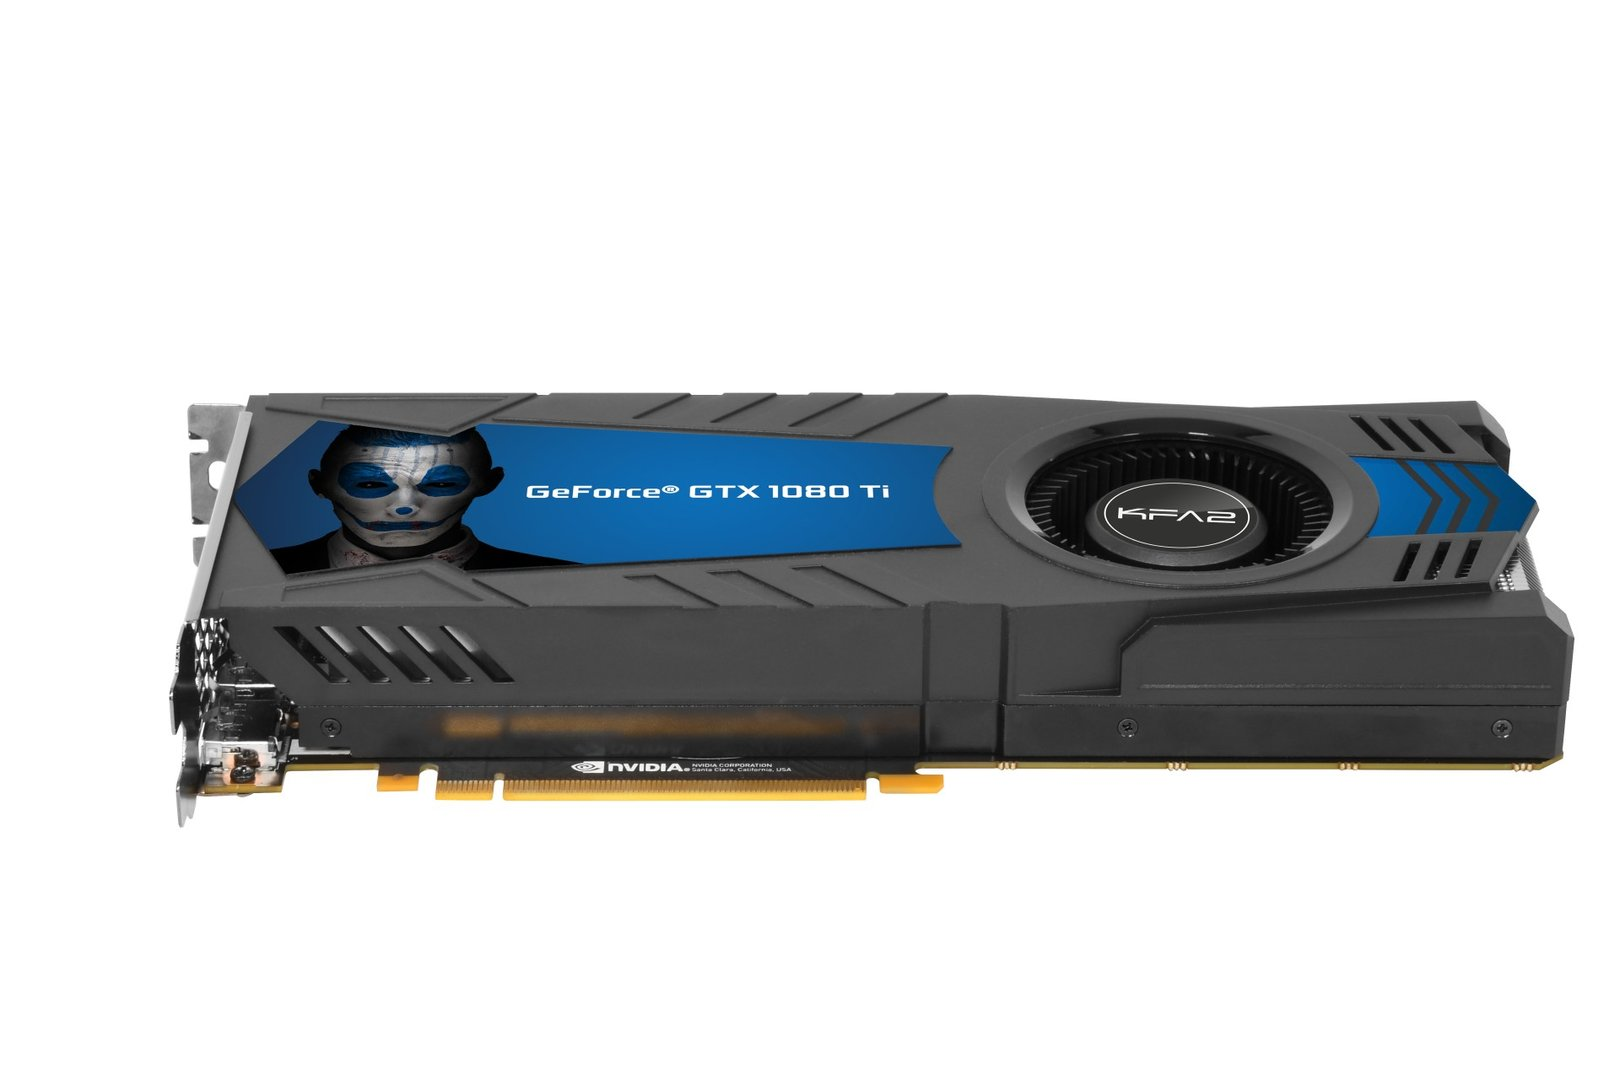 KFA2 GeForce GTX 1080 Ti